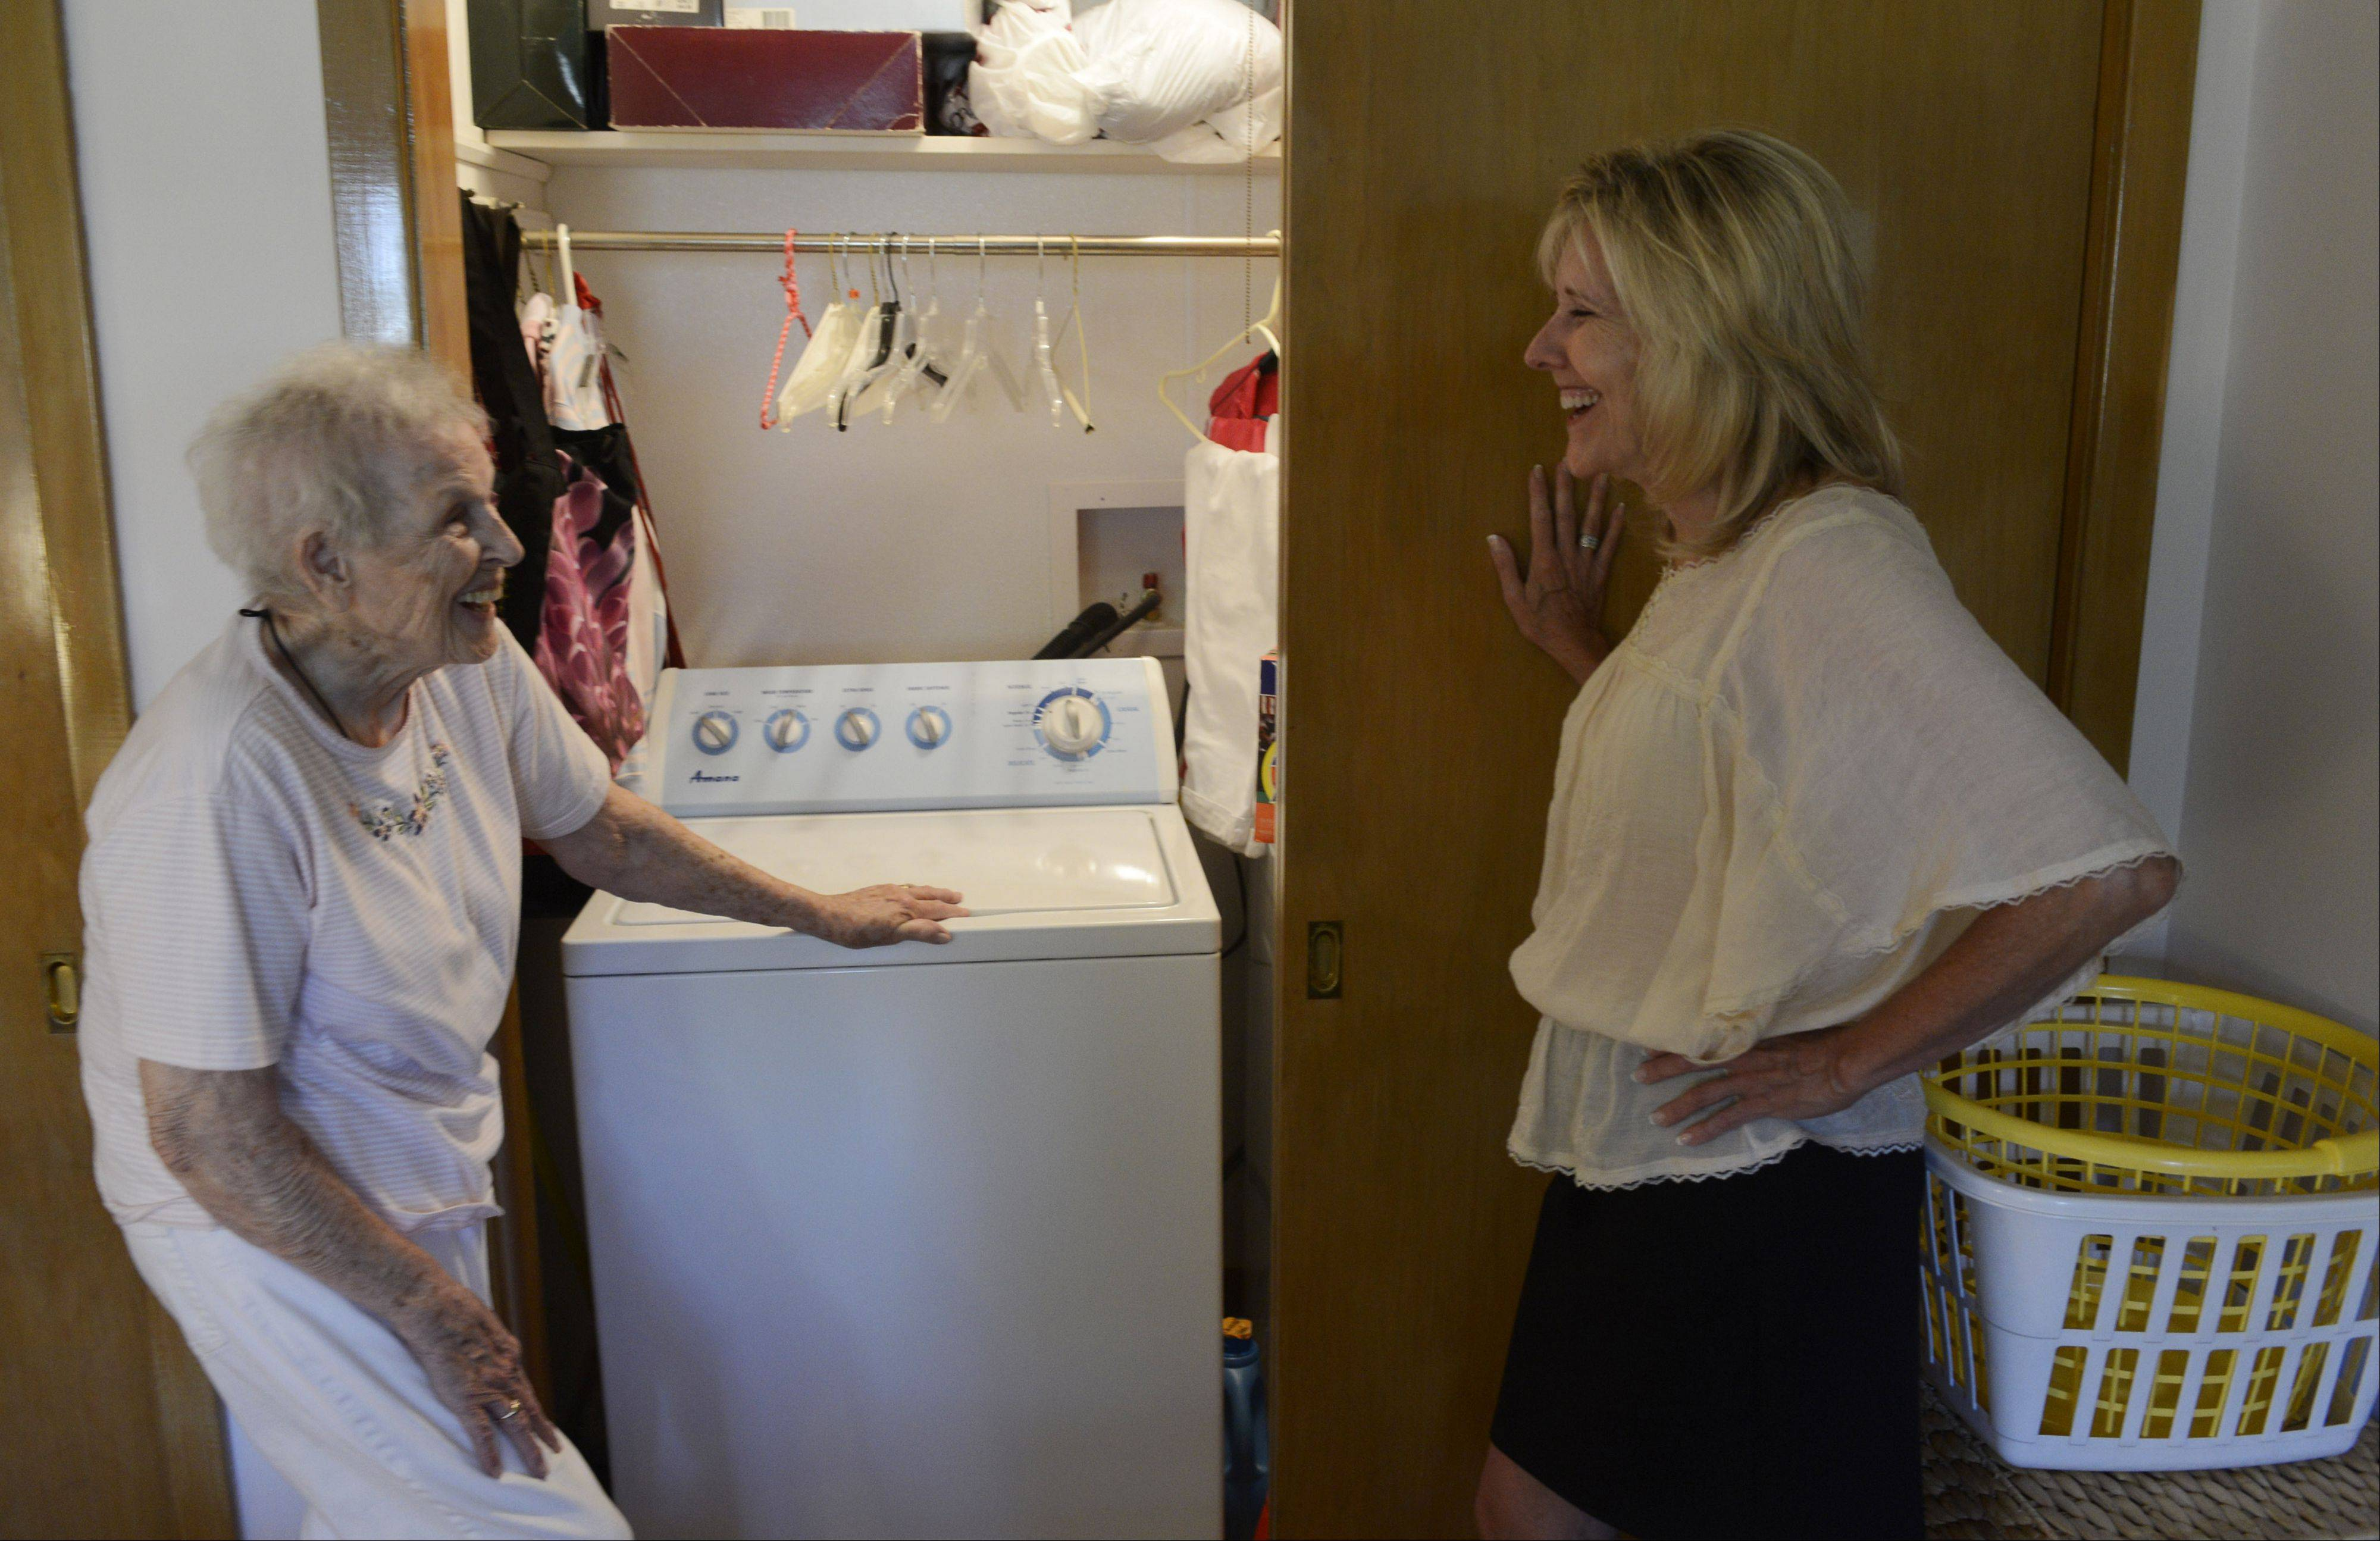 Margaret Fletcher of Des Plaines talks with her daughter-in-law, JoAnn Fletcher, as the two stand near a laundry room which was built into Margaret�s bedroom closet so she does not have to go into the basement. Angel Guardian, a Barrington-area business co-founded by JoAnn Fletcher, helps make seniors� homes safe to live in.